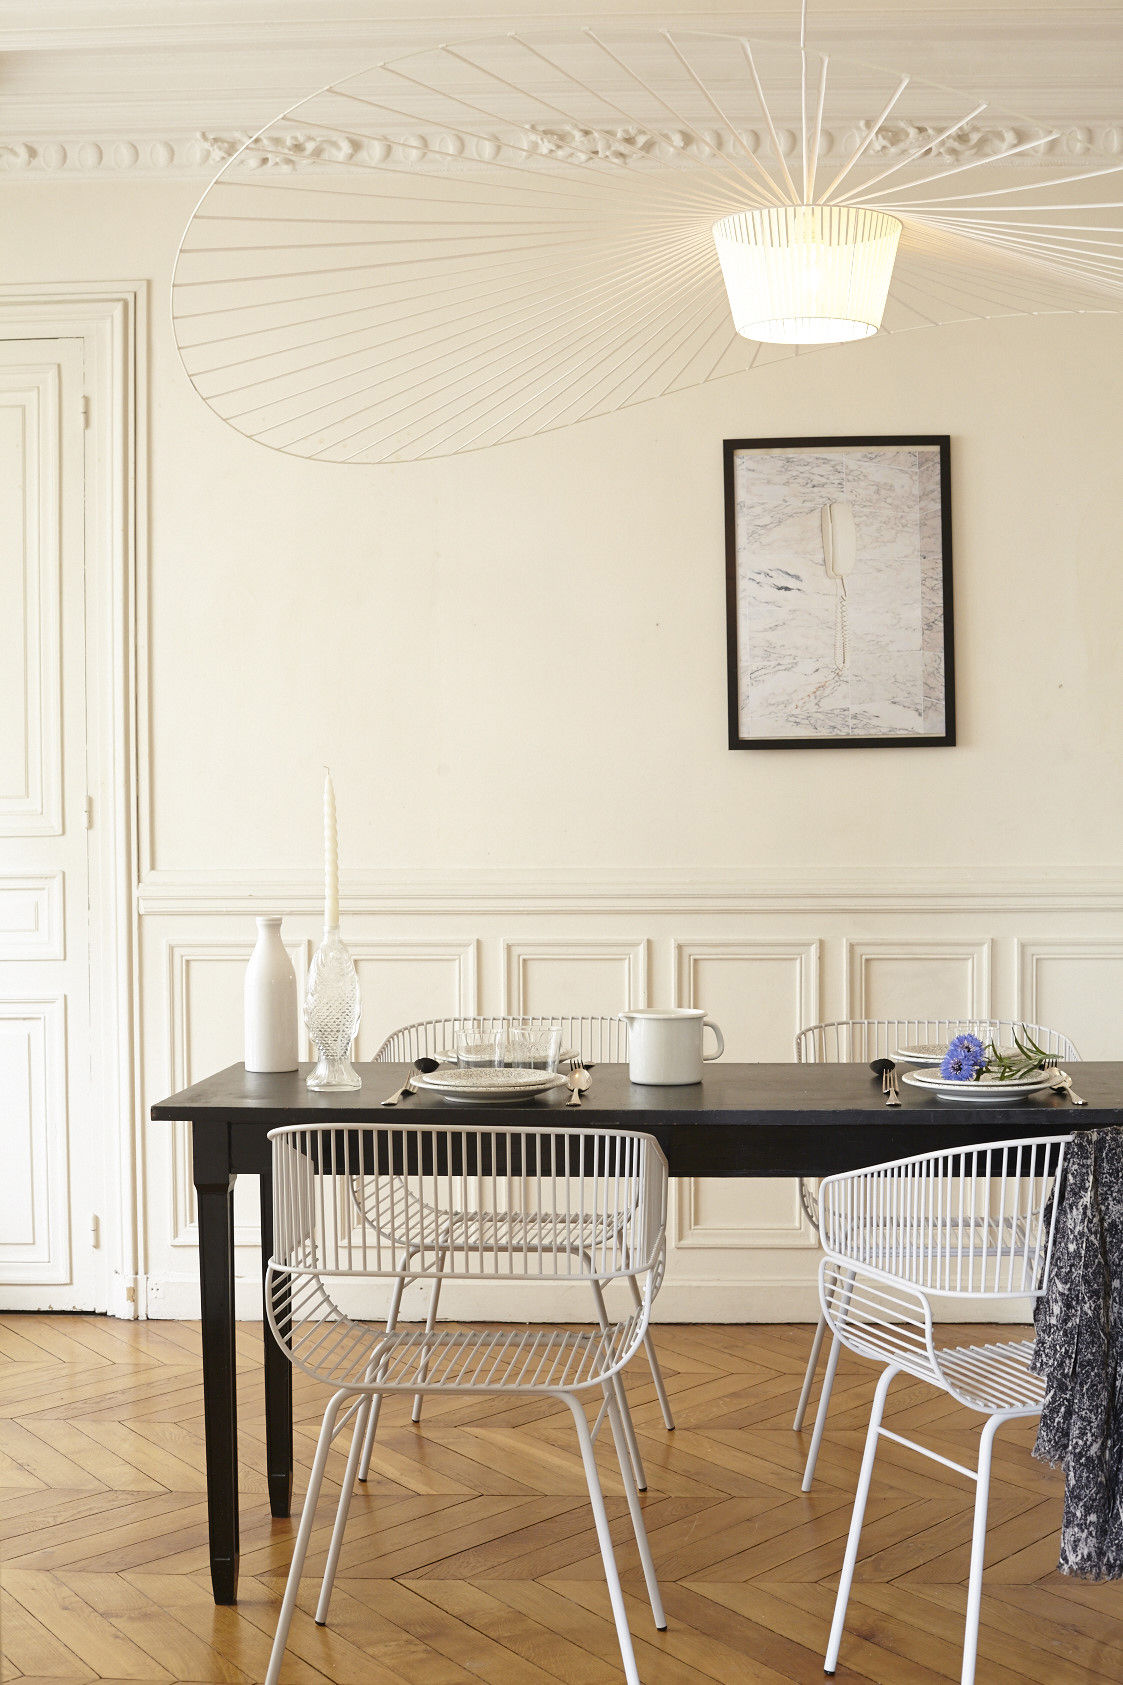 Tendance : la suspension Vertigo de Constance Guisset - Frenchy Fancy